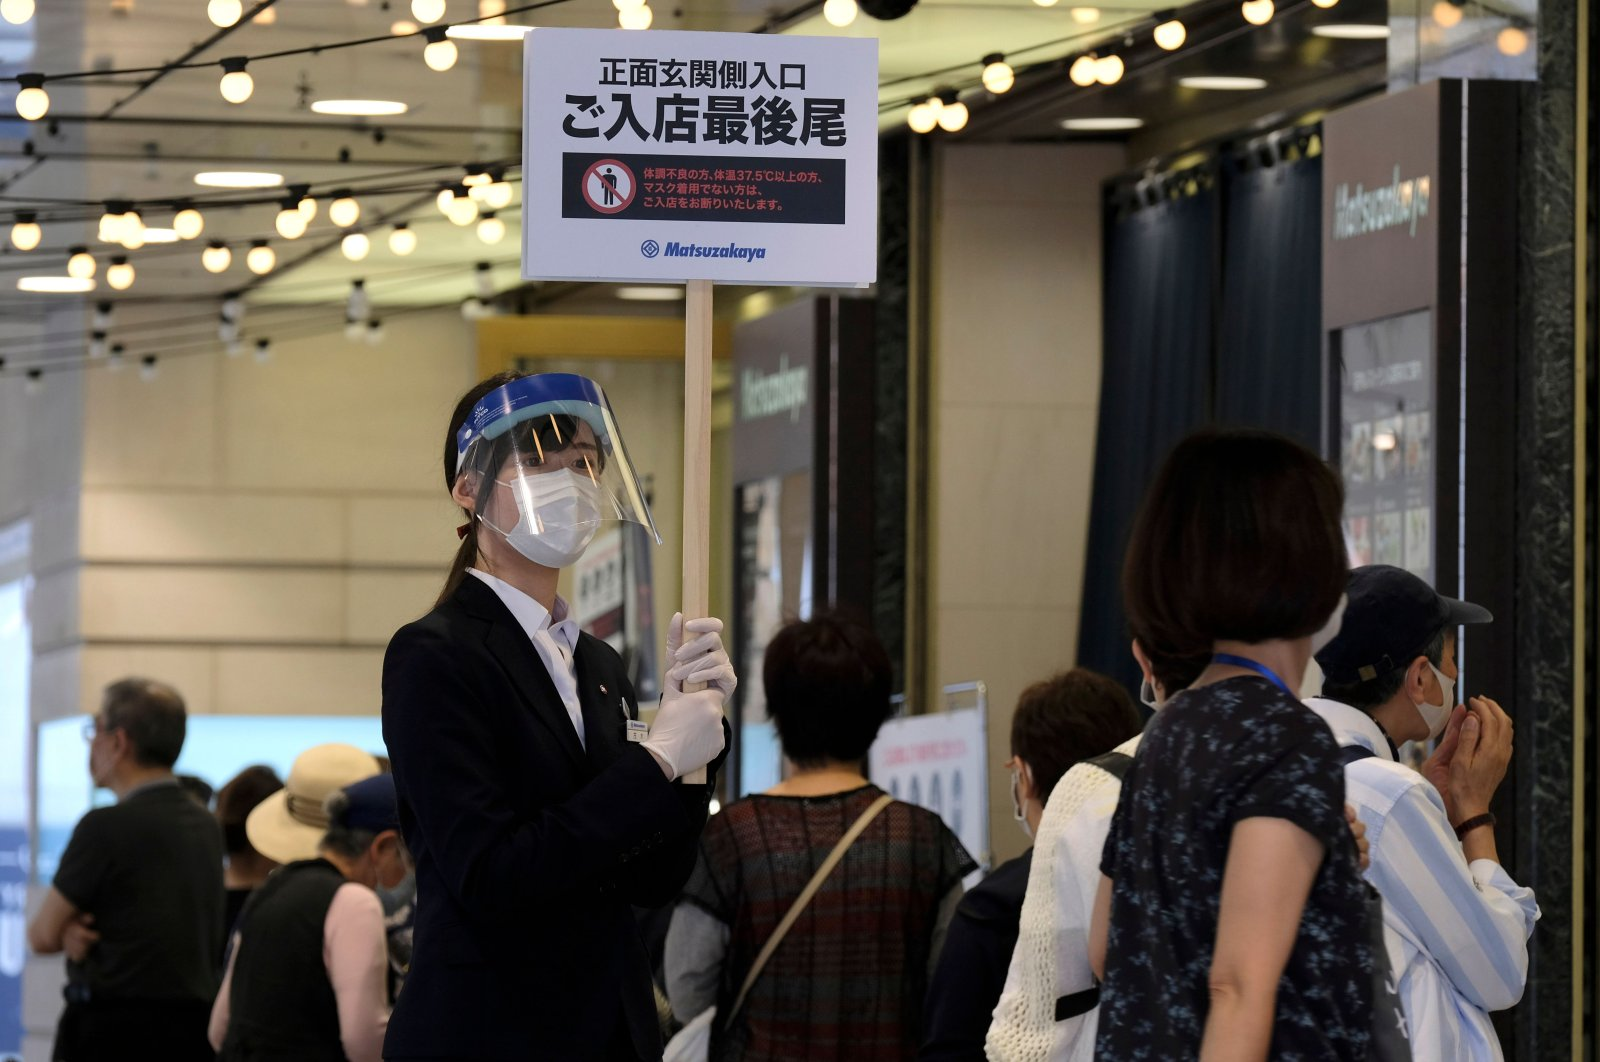 An employee wearing a face shield amid concerns of the COVID-19 coronavirus holds up a sign as people wait in a queue to visit Ueno's Matsuzakaya department store in Tokyo on May 26, 2020. (AFP Photo)